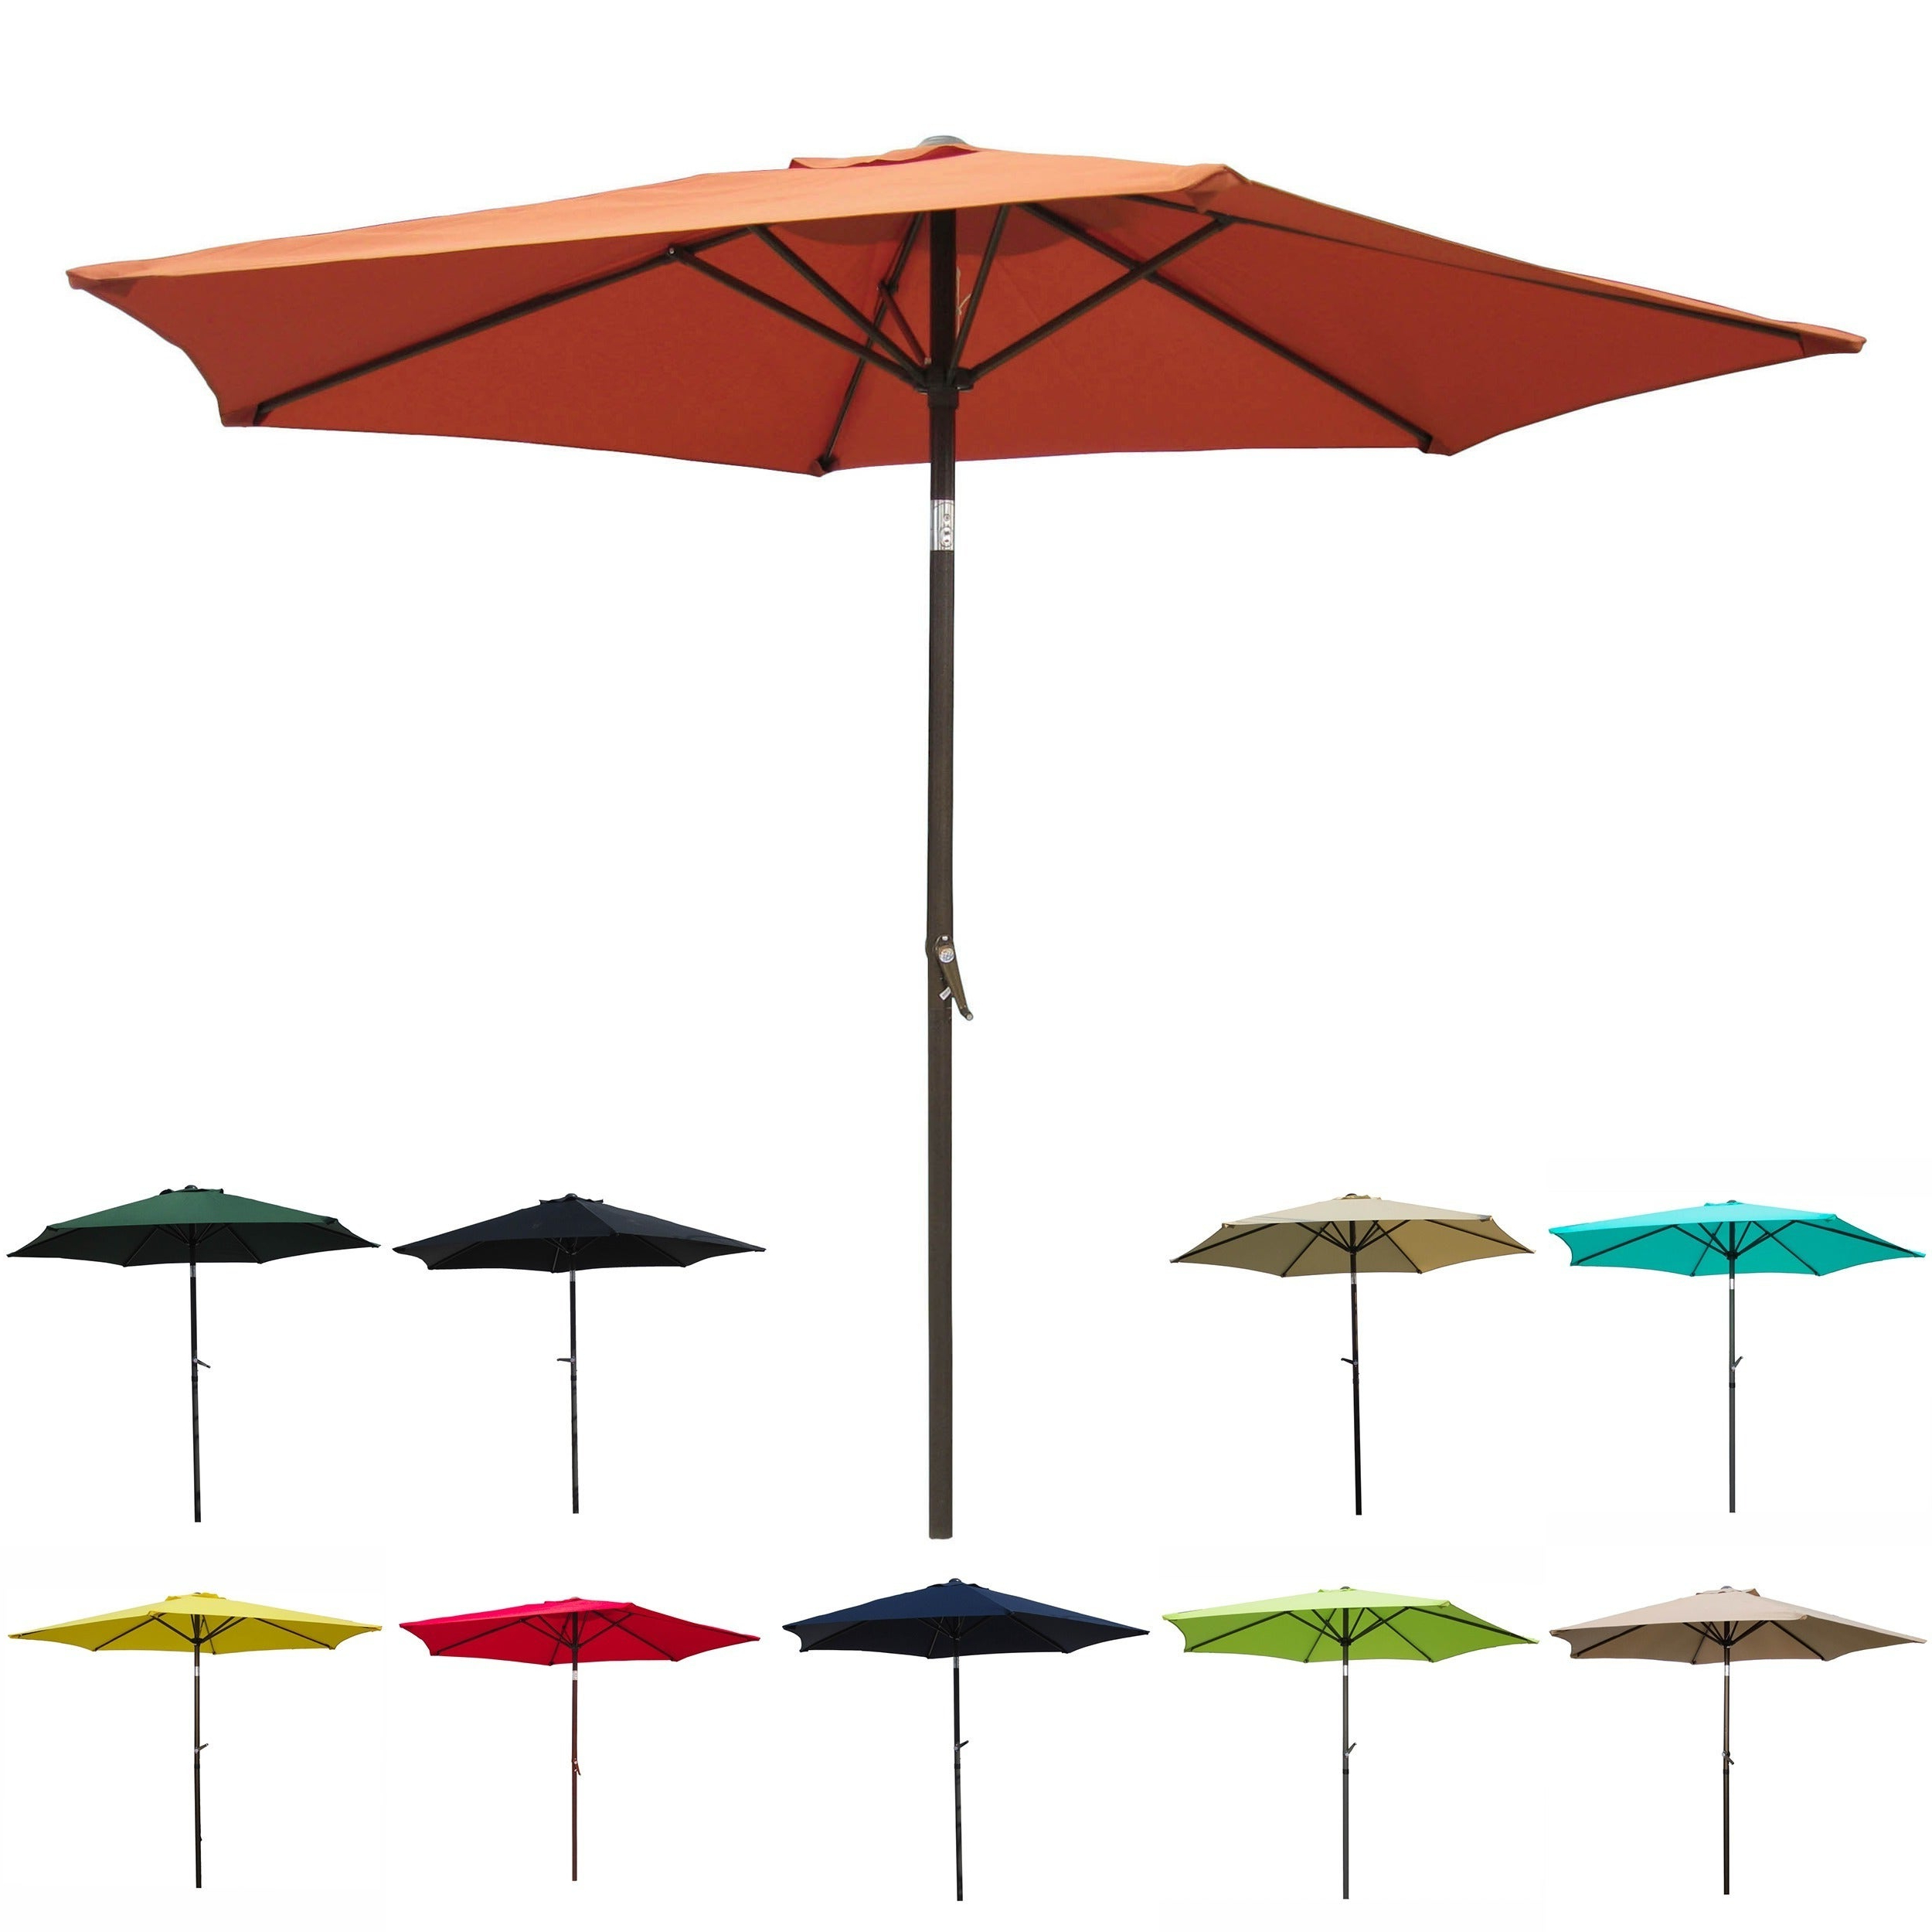 Patio Umbrella 8 Foot Within Well Known Frome Market Umbrellas (View 15 of 20)